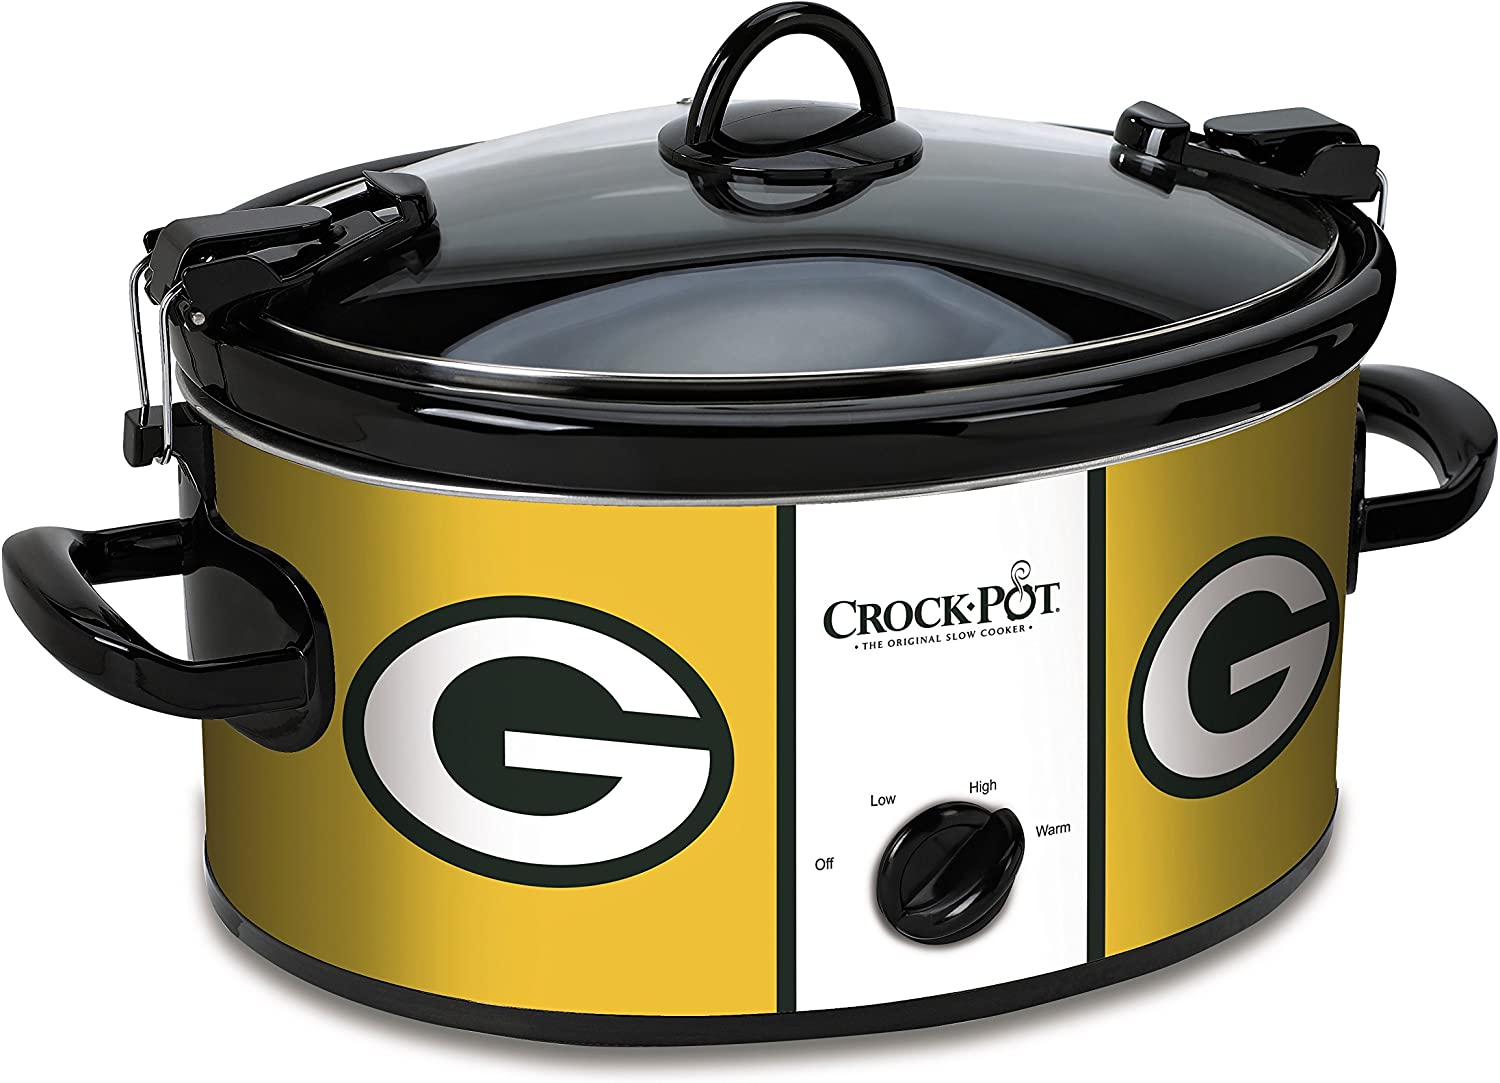 Crock-Pot Green Bay Packers NFL Cook Cooker price Carry unisex Slow 6-Quart